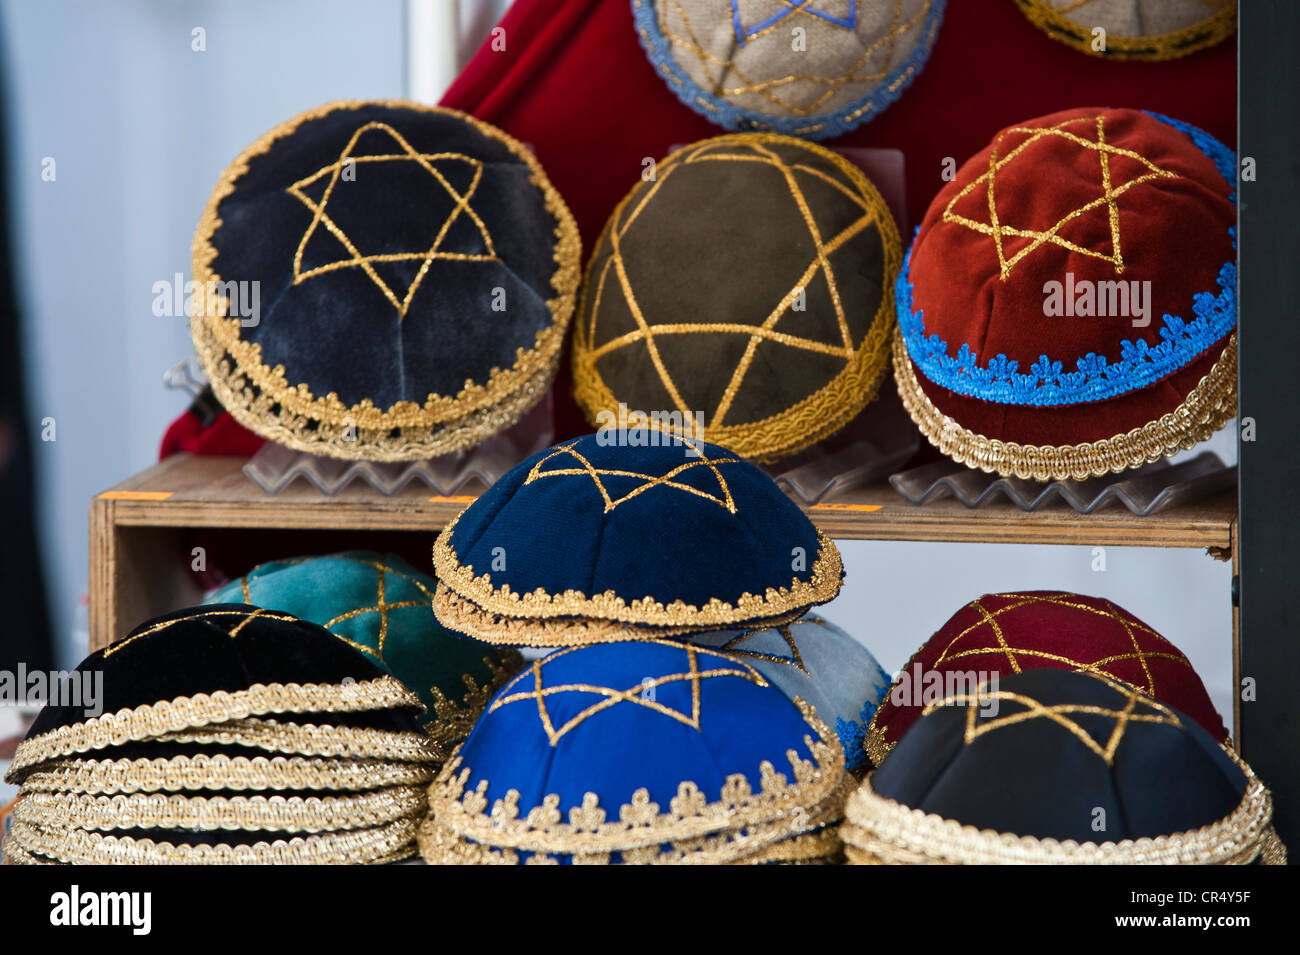 Kipas for sale at a stall, Kazimierz Jewish Quarter, Krakow, Malopolska, Poland, Europe, PublicGround - Stock Image